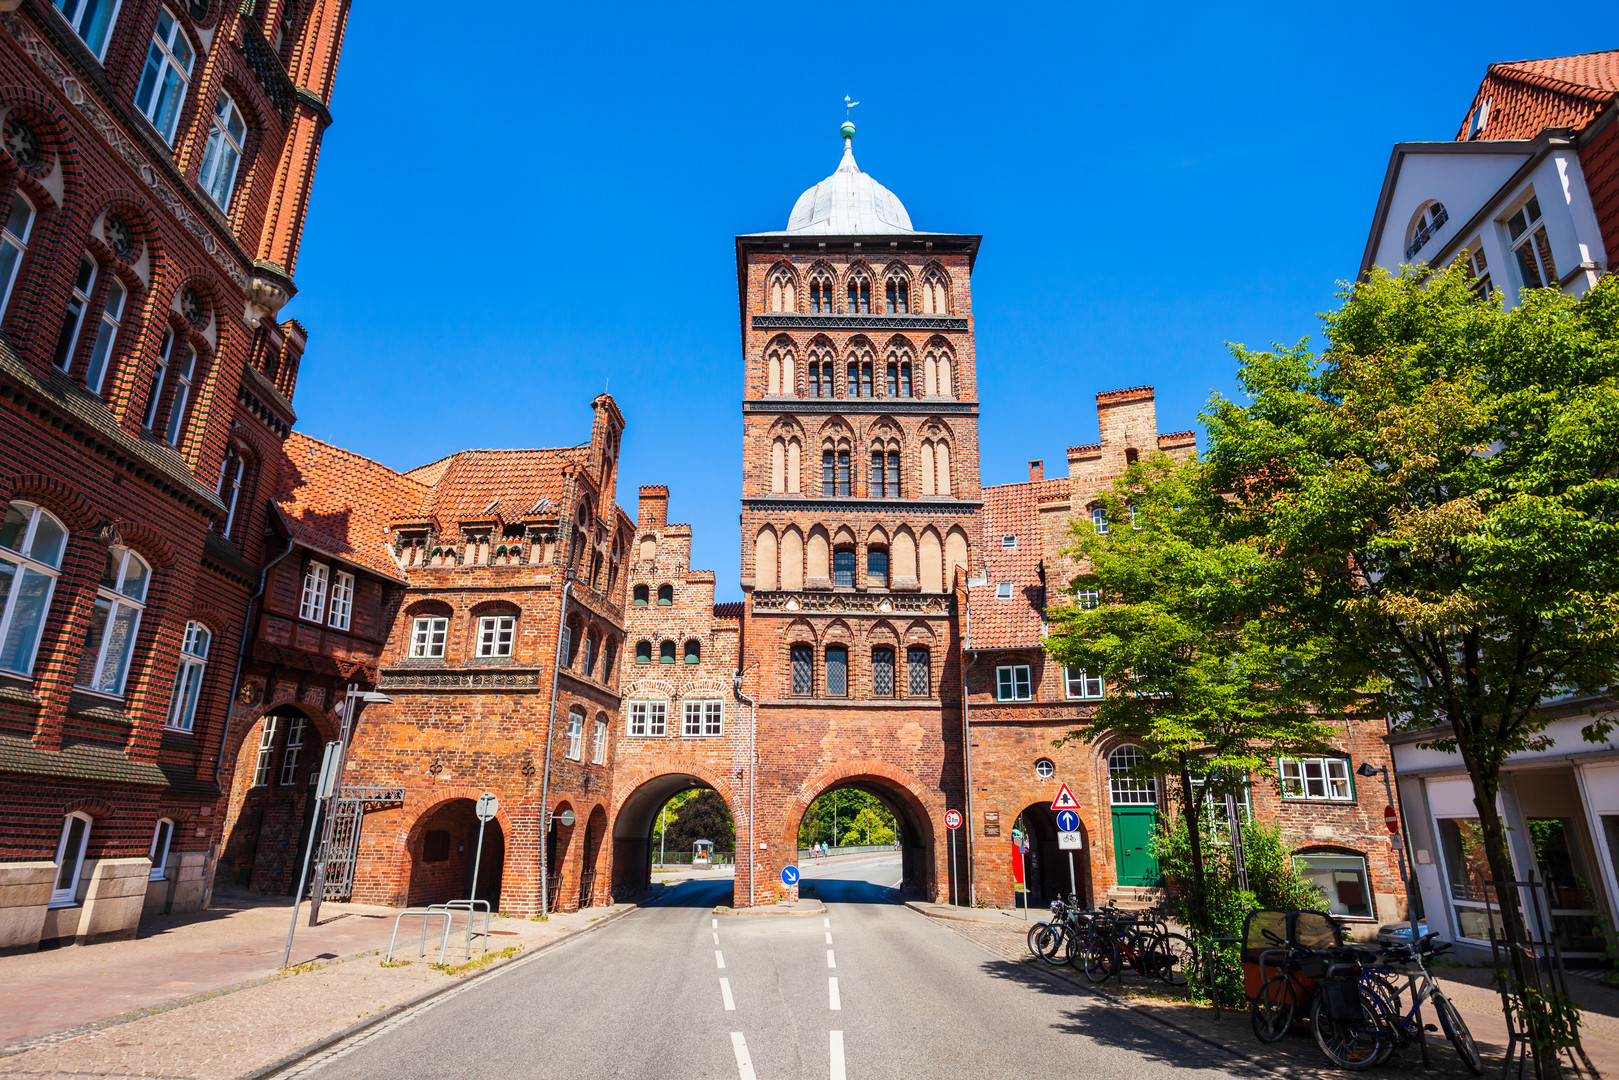 Burgtor Gate in Lübeck.jpg